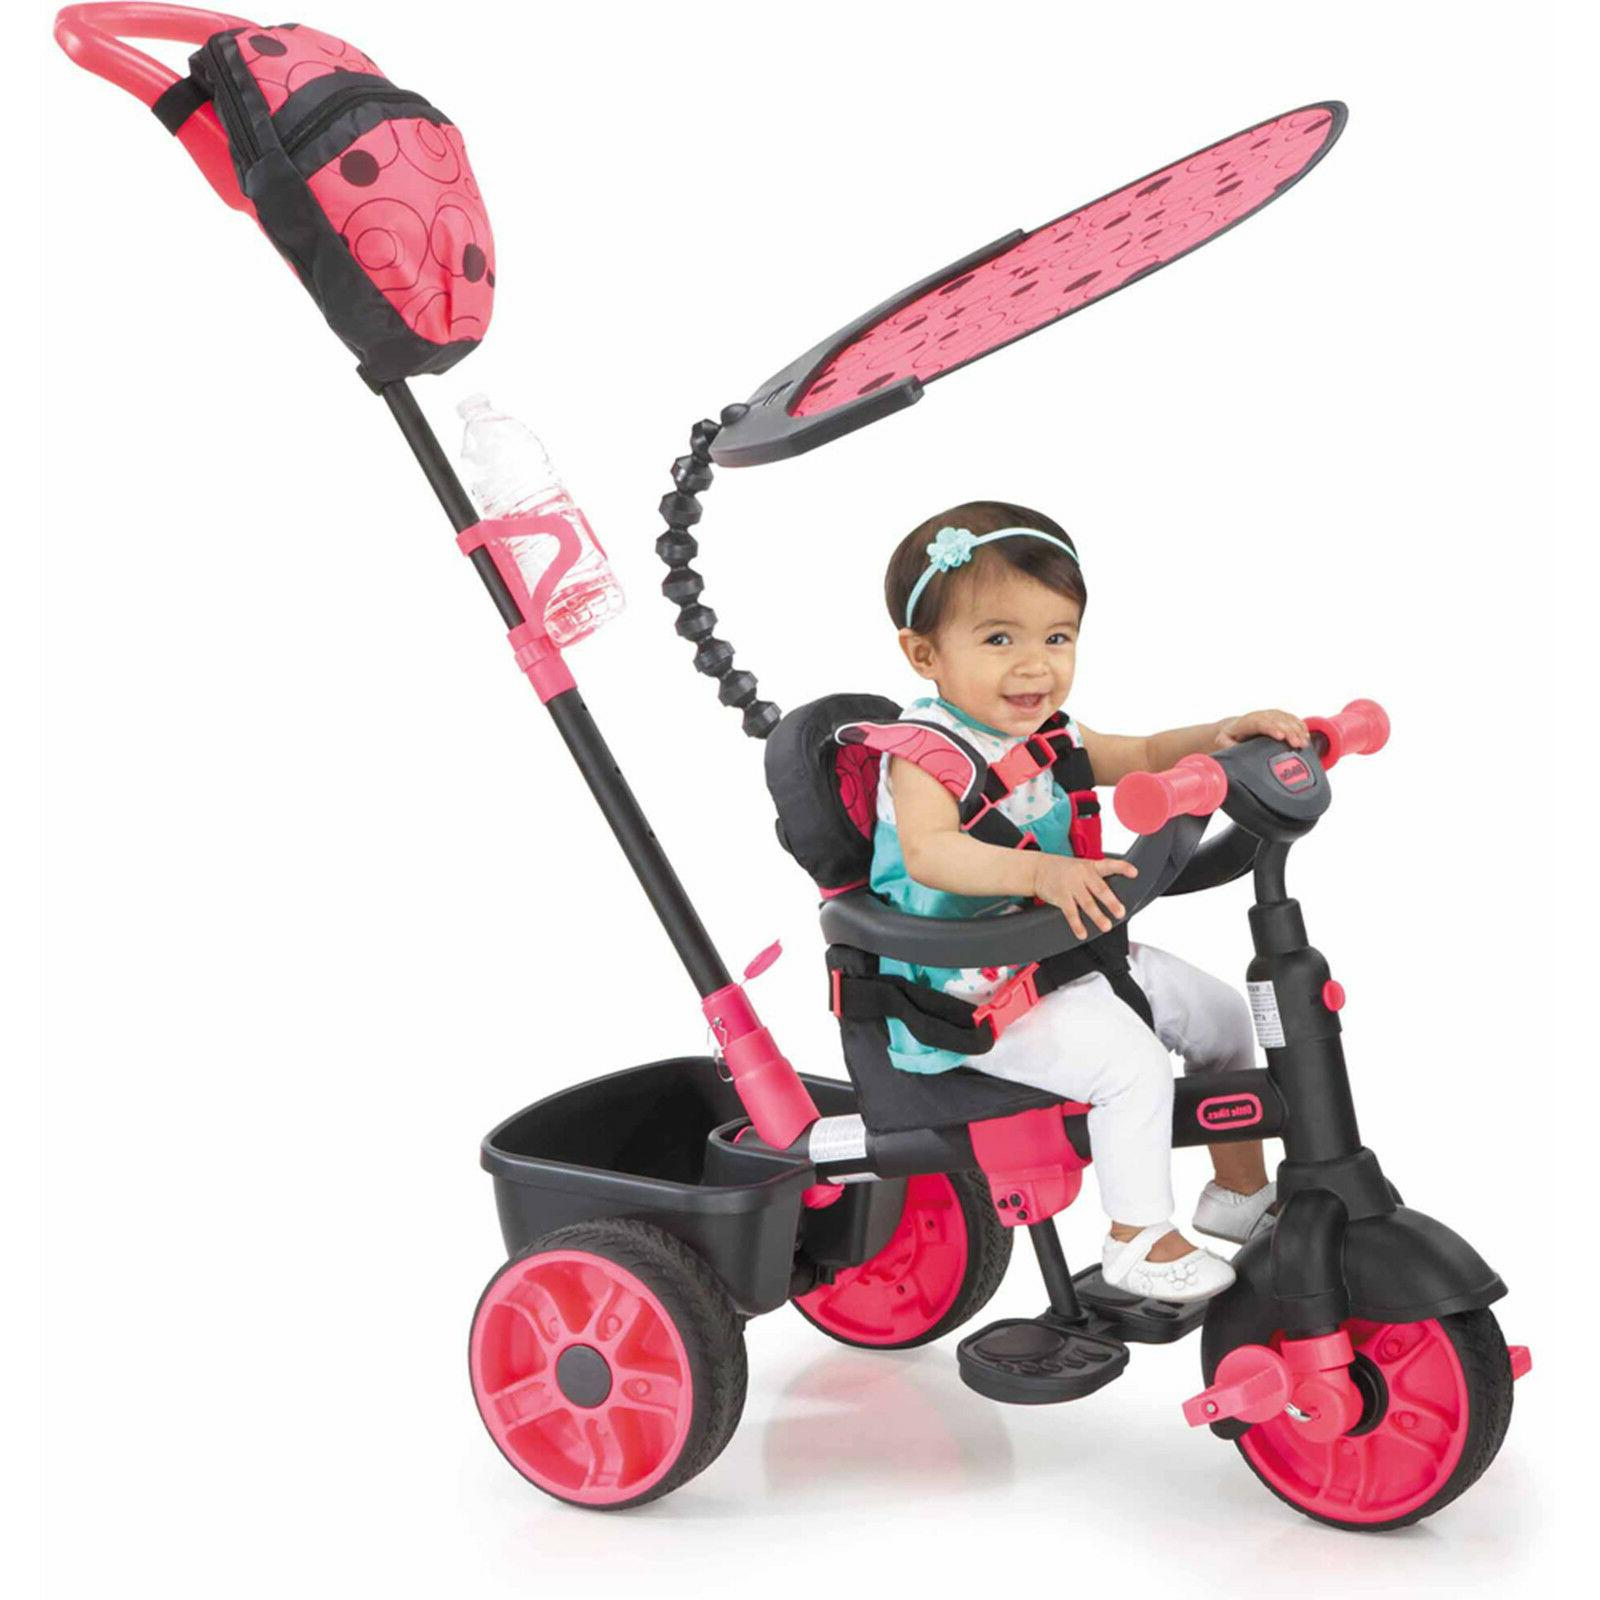 Little Tikes 4-in-1 Ride On, Neon Pink, Deluxe Edition